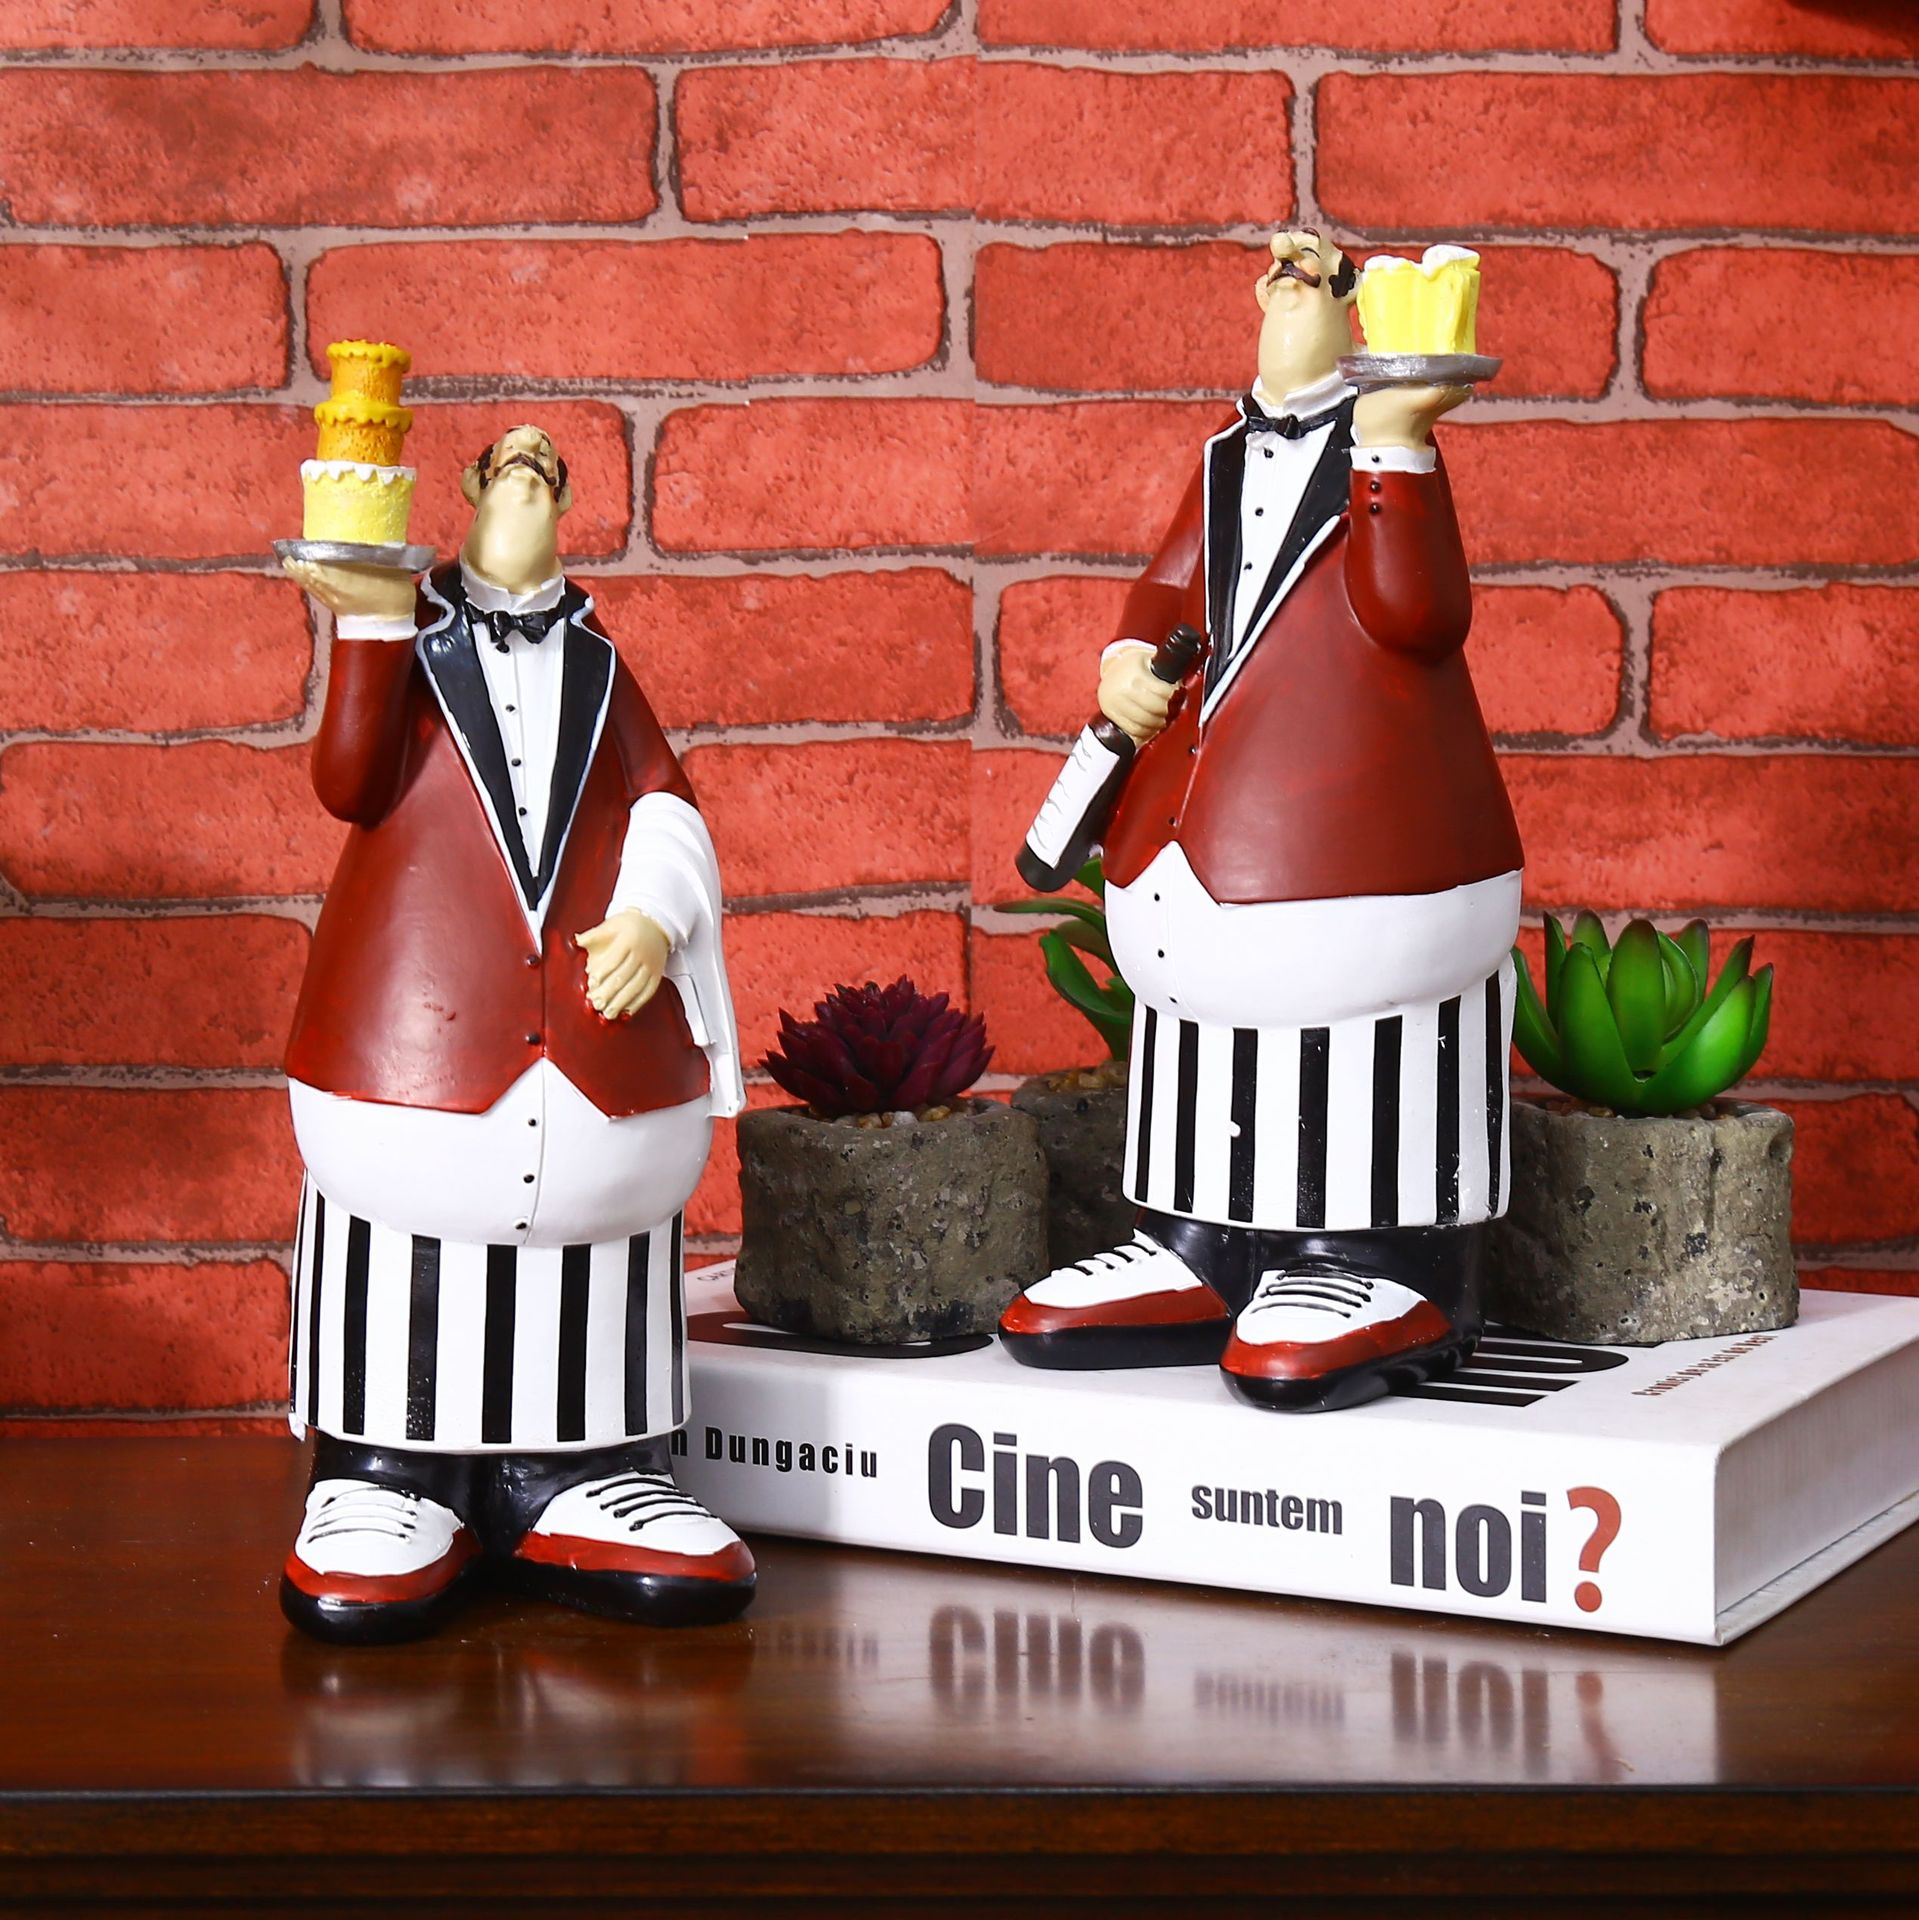 Decoration Pieces For Kitchen: Patisserie Chef Model Crafts Decorative Home Decor